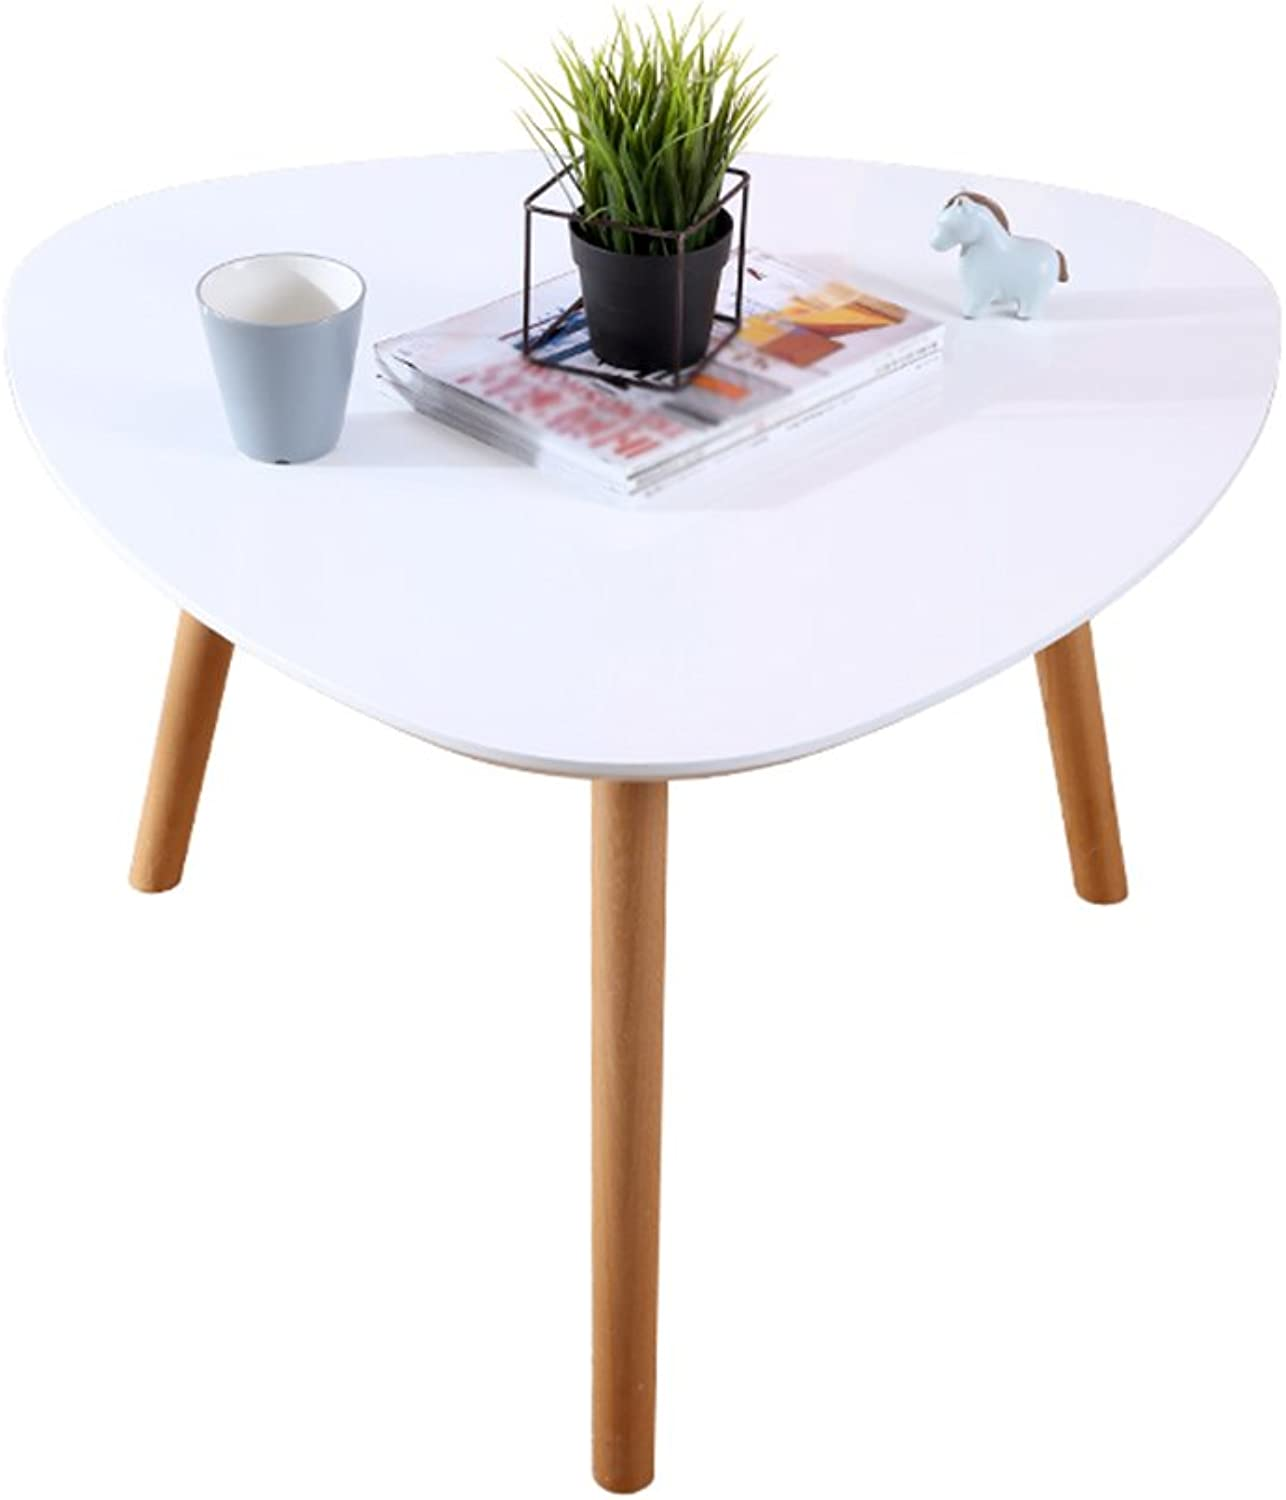 Chang-dq Solid Wood Coffee Table Creative White Modern Minimalist Style Triangle Tea Table Sofa Side Table Furniture Living Room Balcony Triangular Leg  50-70 cm Durable (Size   A)